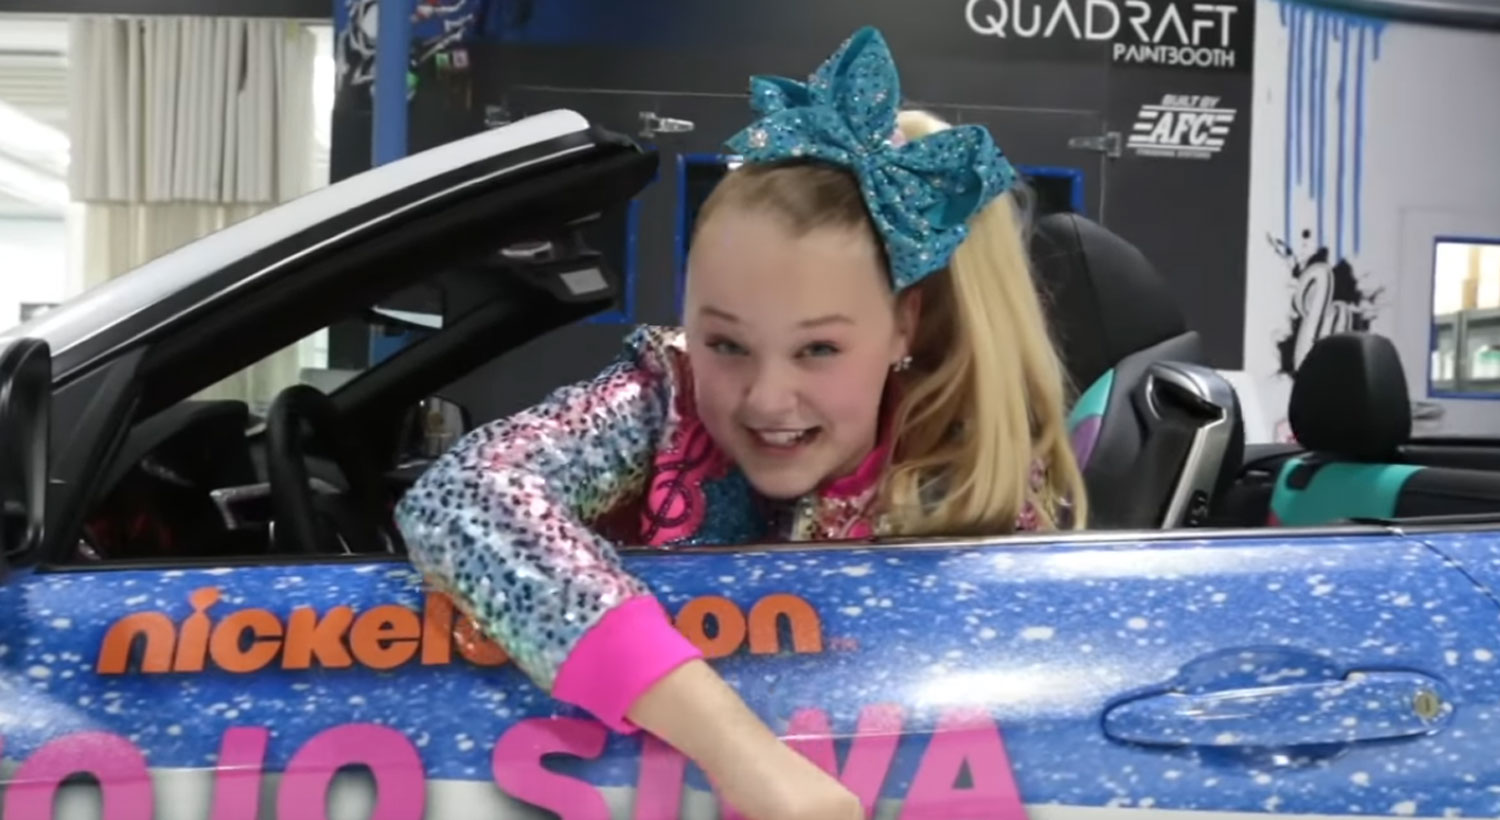 JoJo Siwa Gets Customized Car With Her Face on It for Christmas! (Video)